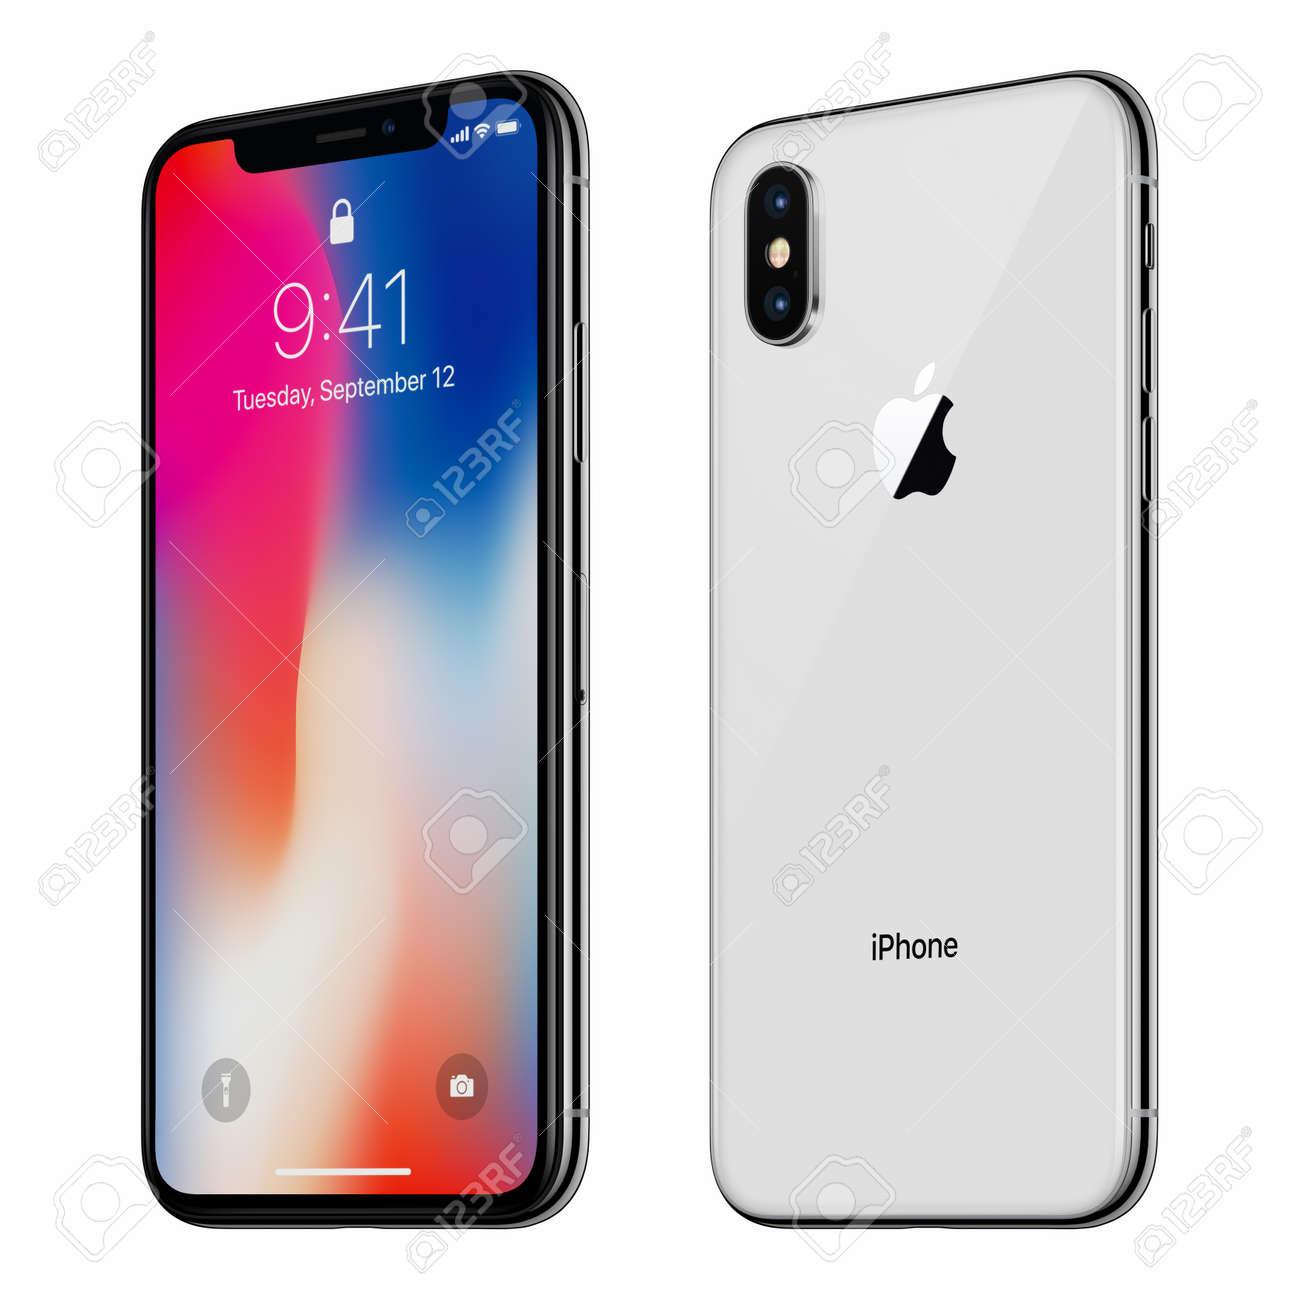 Stock Photo - White rotated Apple iPhone X with iOS 11 lockscreen front side and back side isolated on white background